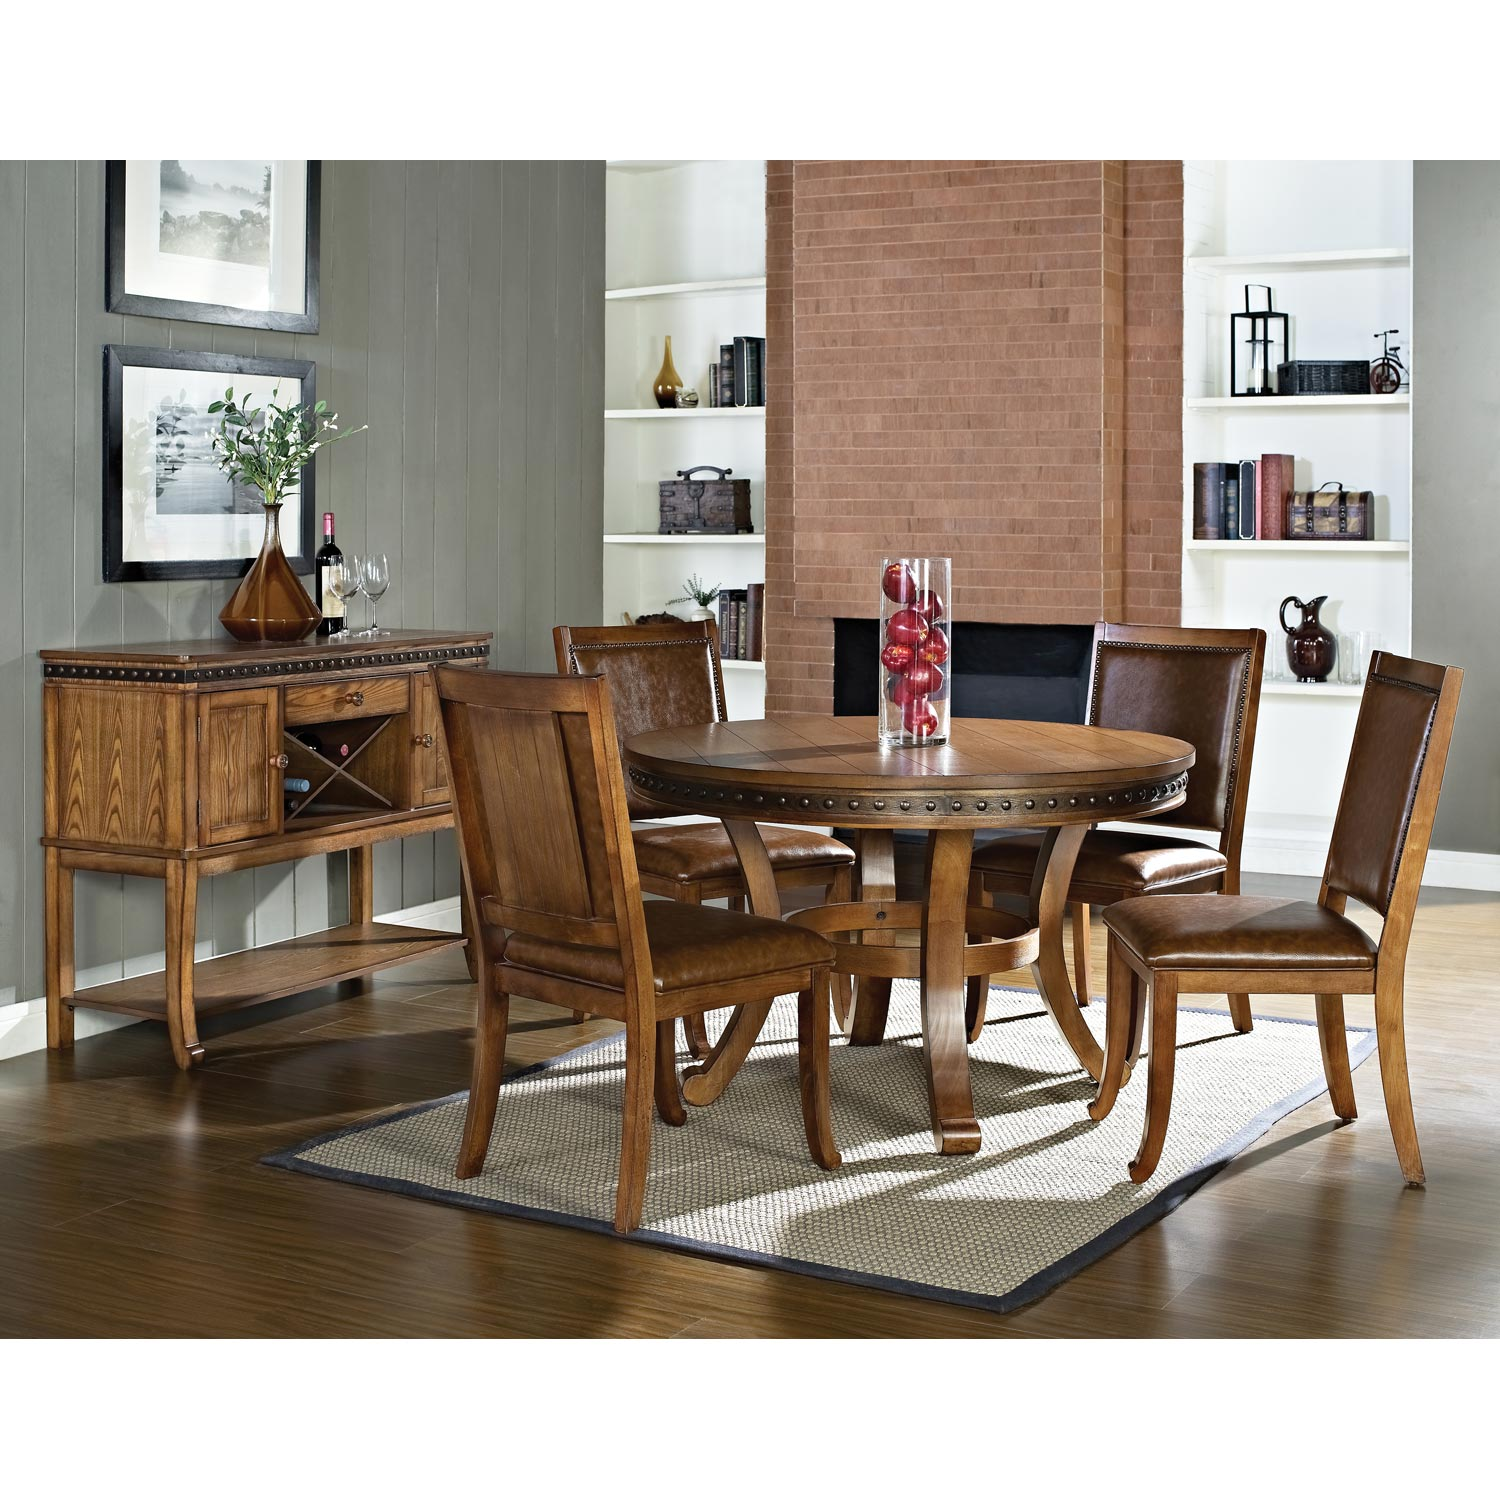 Ashbrook Round Wood Dining Table Antique Nail Heads